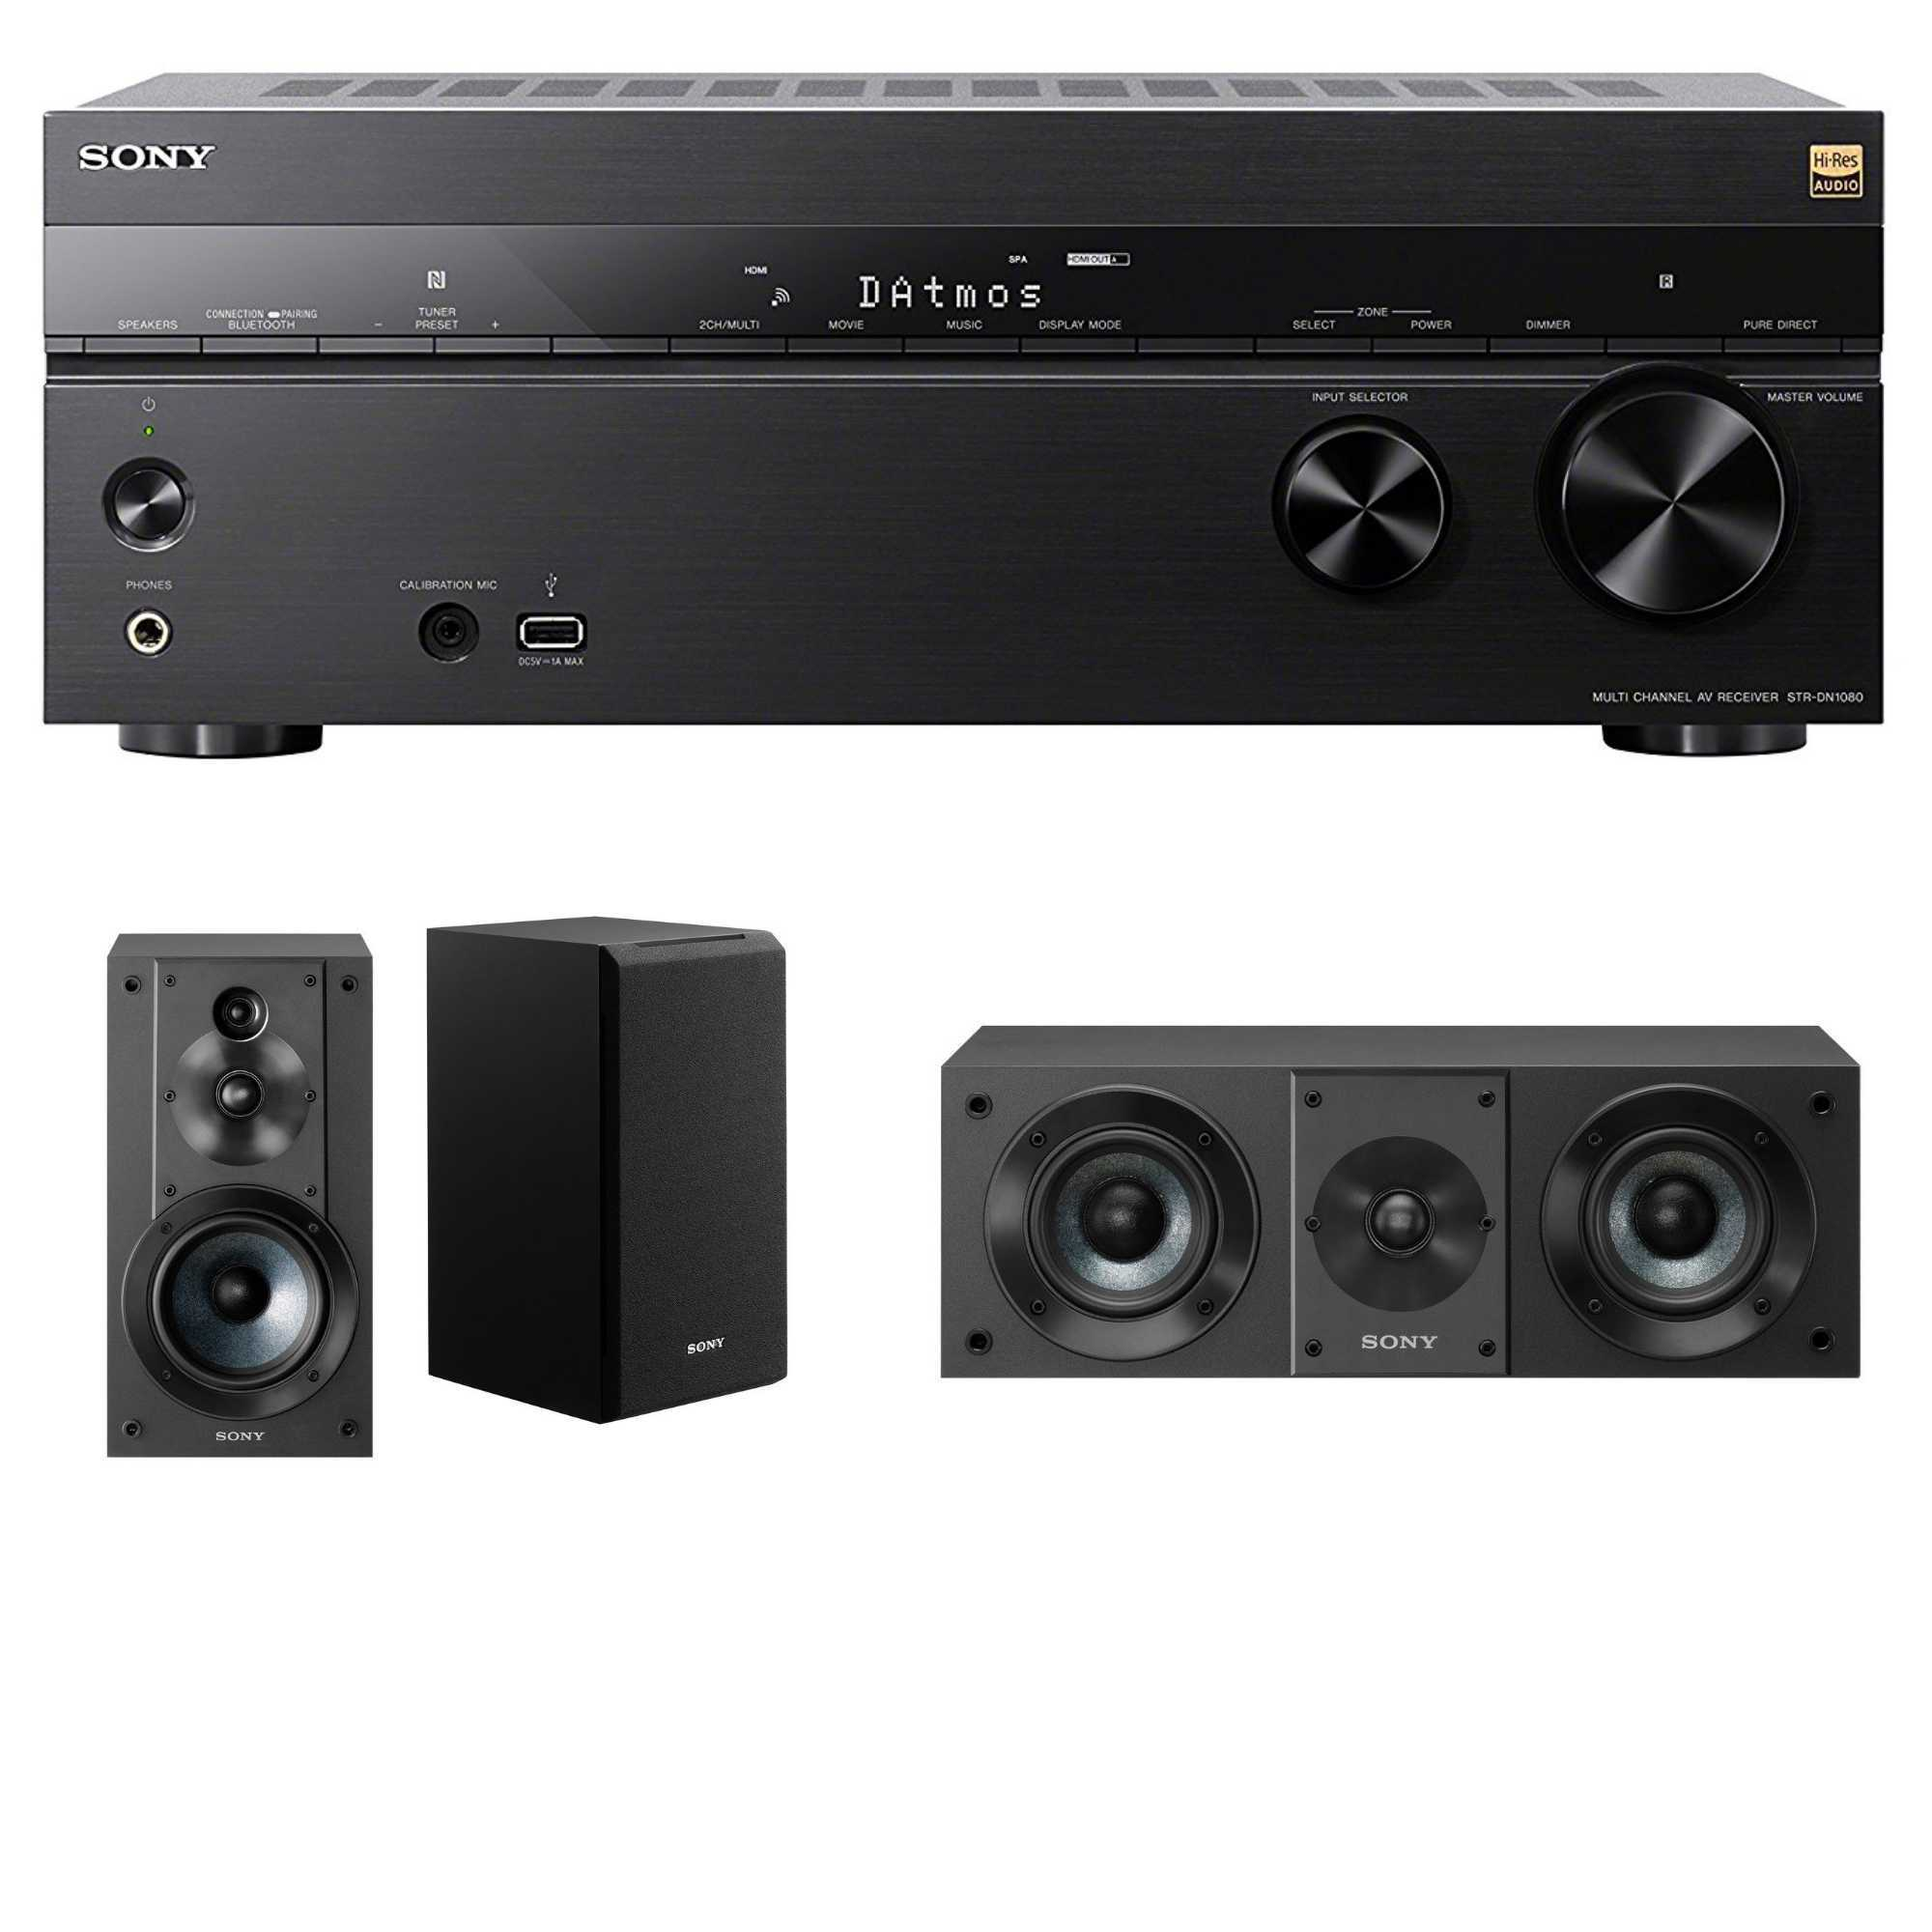 Sony 7.2 Dolby Atmos Wi-Fi Network AV Home Theater Receiver with Speaker Bundle